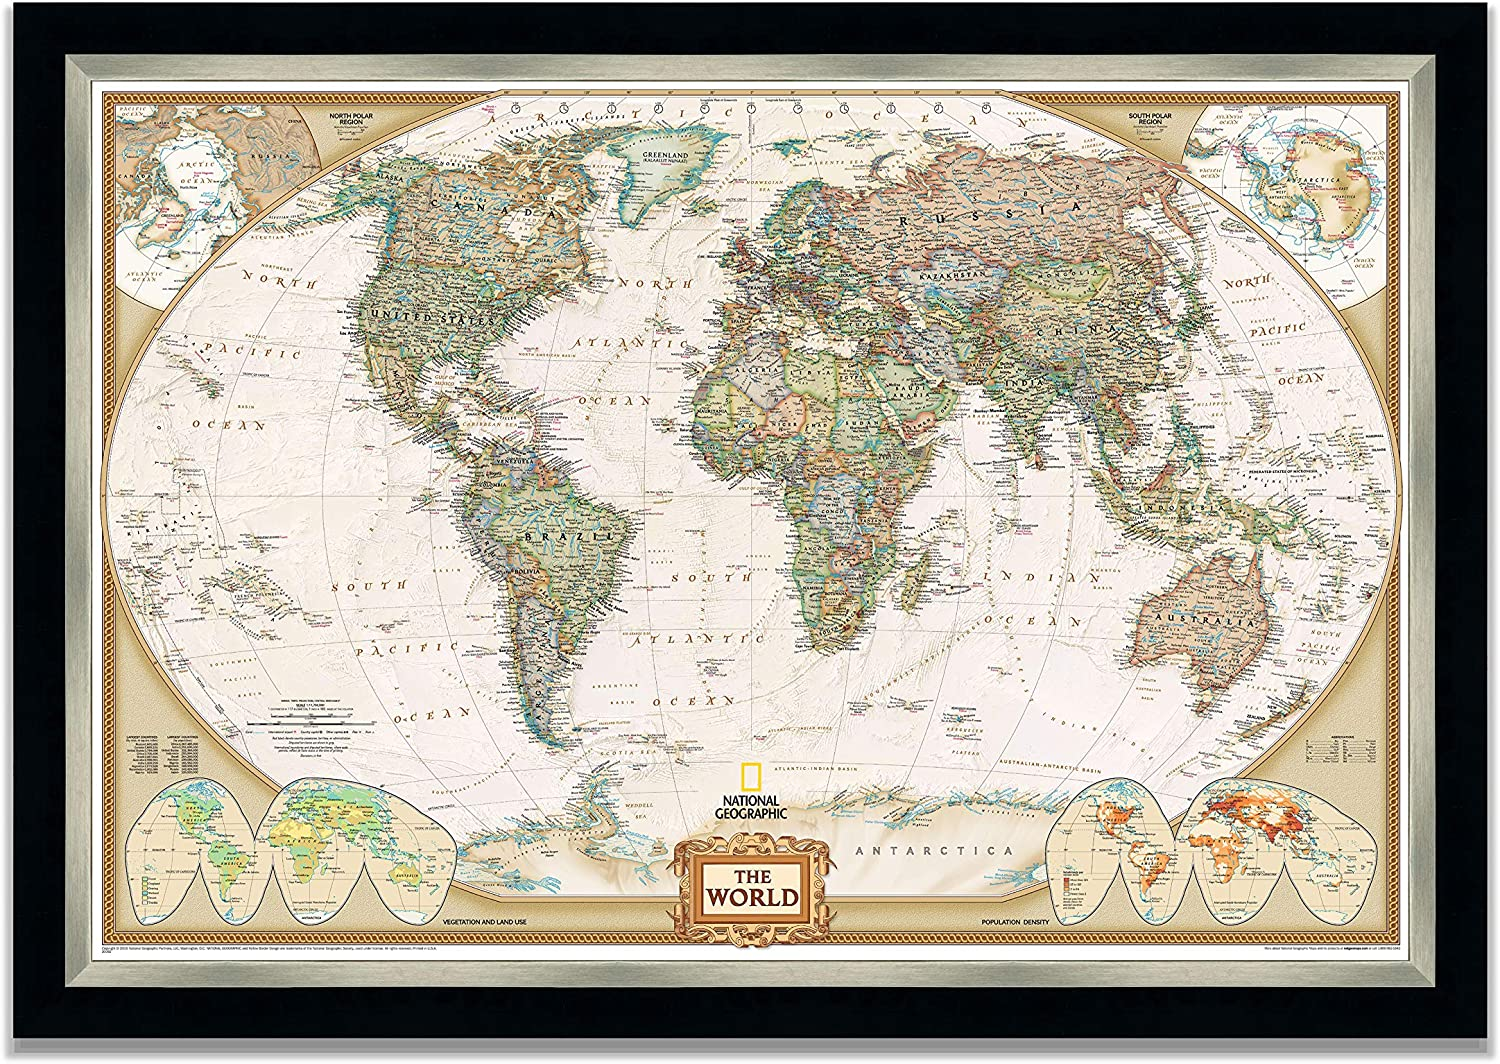 Renditions Gallery Executive National Geographic World Travel Map With Push Pins, Wall Art For Living Room, Bedroom, Office,24x34, Black and Silver